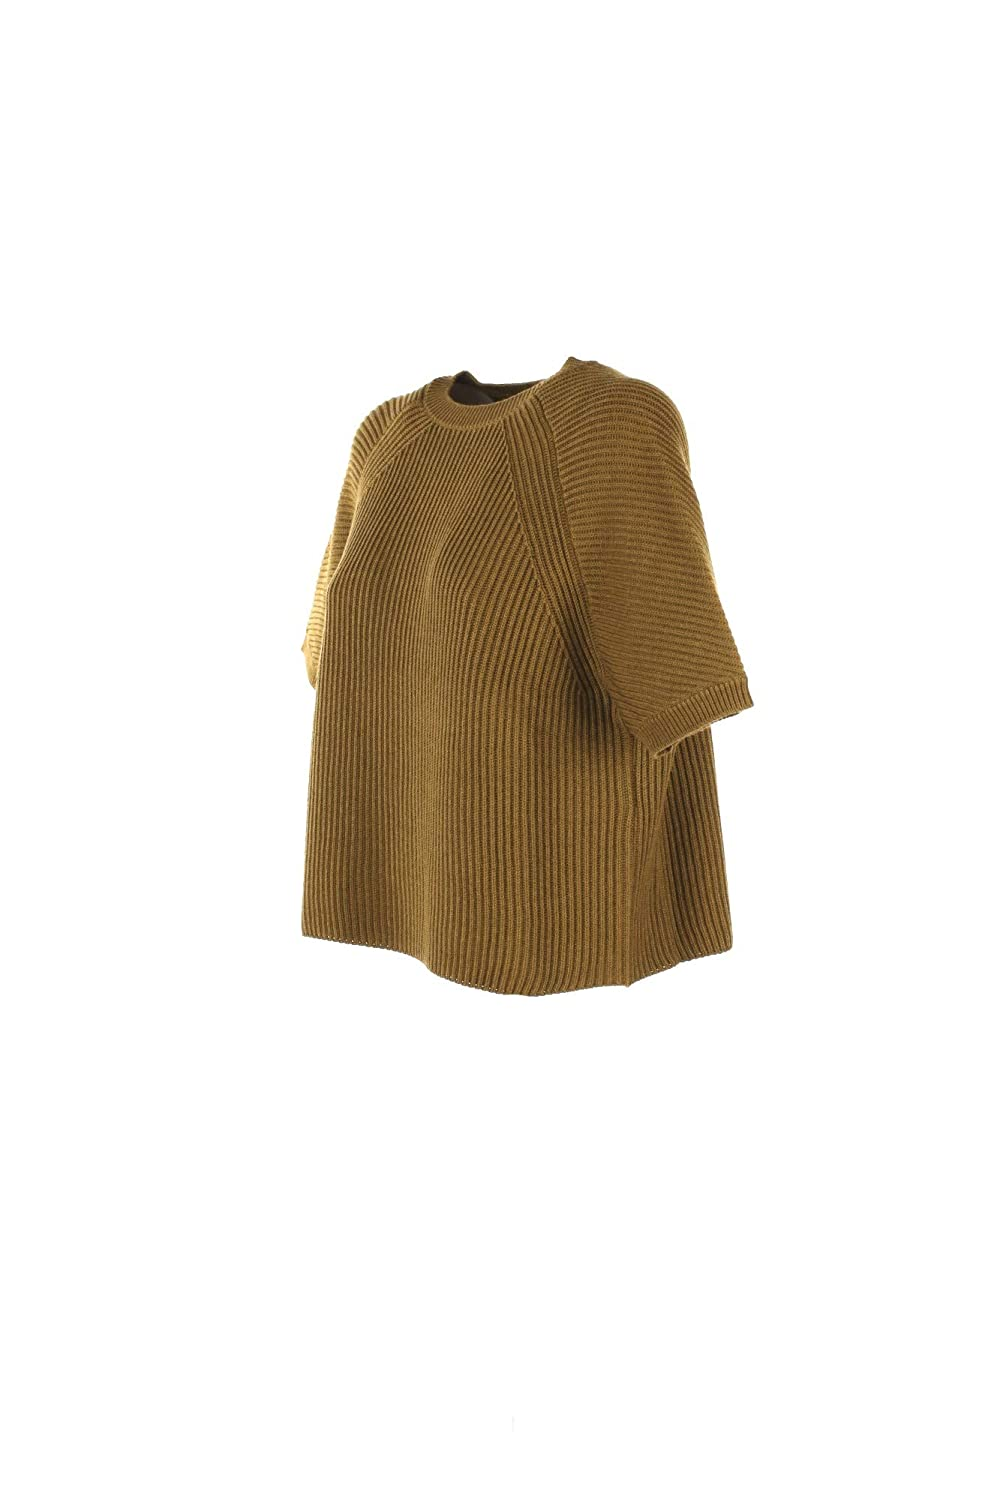 Max Mara Weekend Maglia Donna L Verde Venere Autunno Inverno 2018 19   Amazon.co.uk  Clothing a2d801ac531